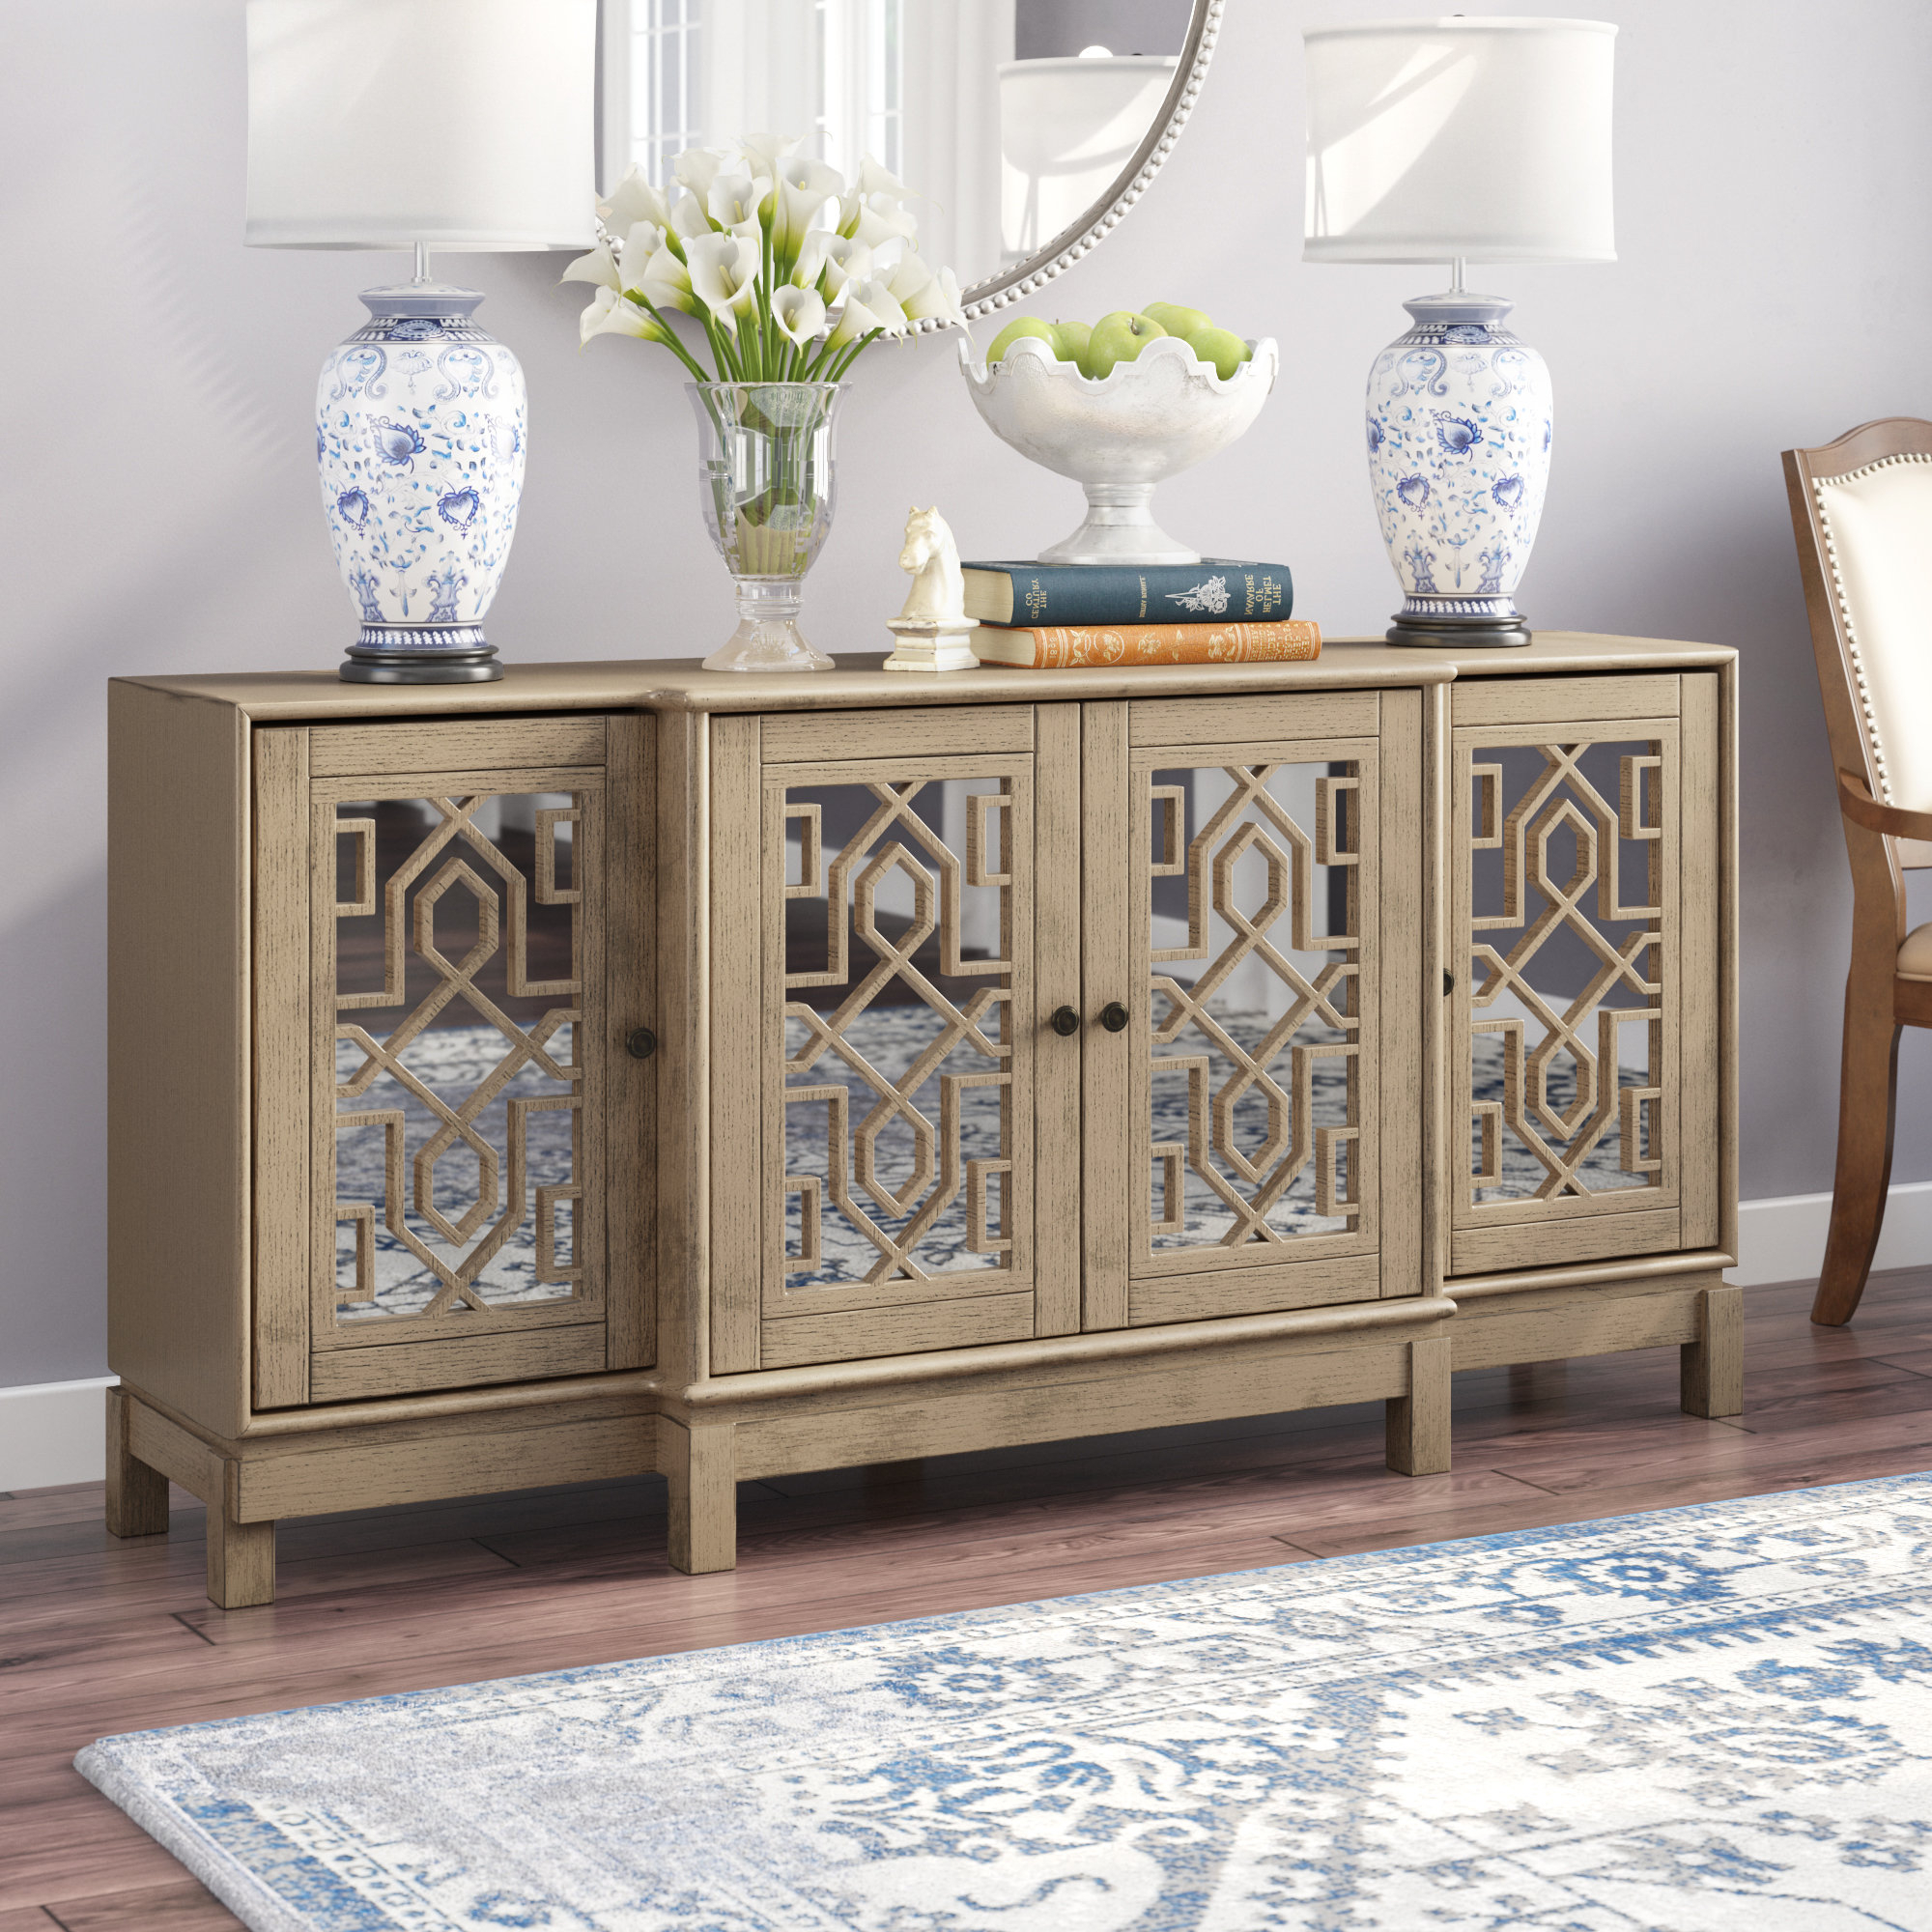 2020 Deana Credenzas Regarding Kitchen Credenza (View 17 of 20)